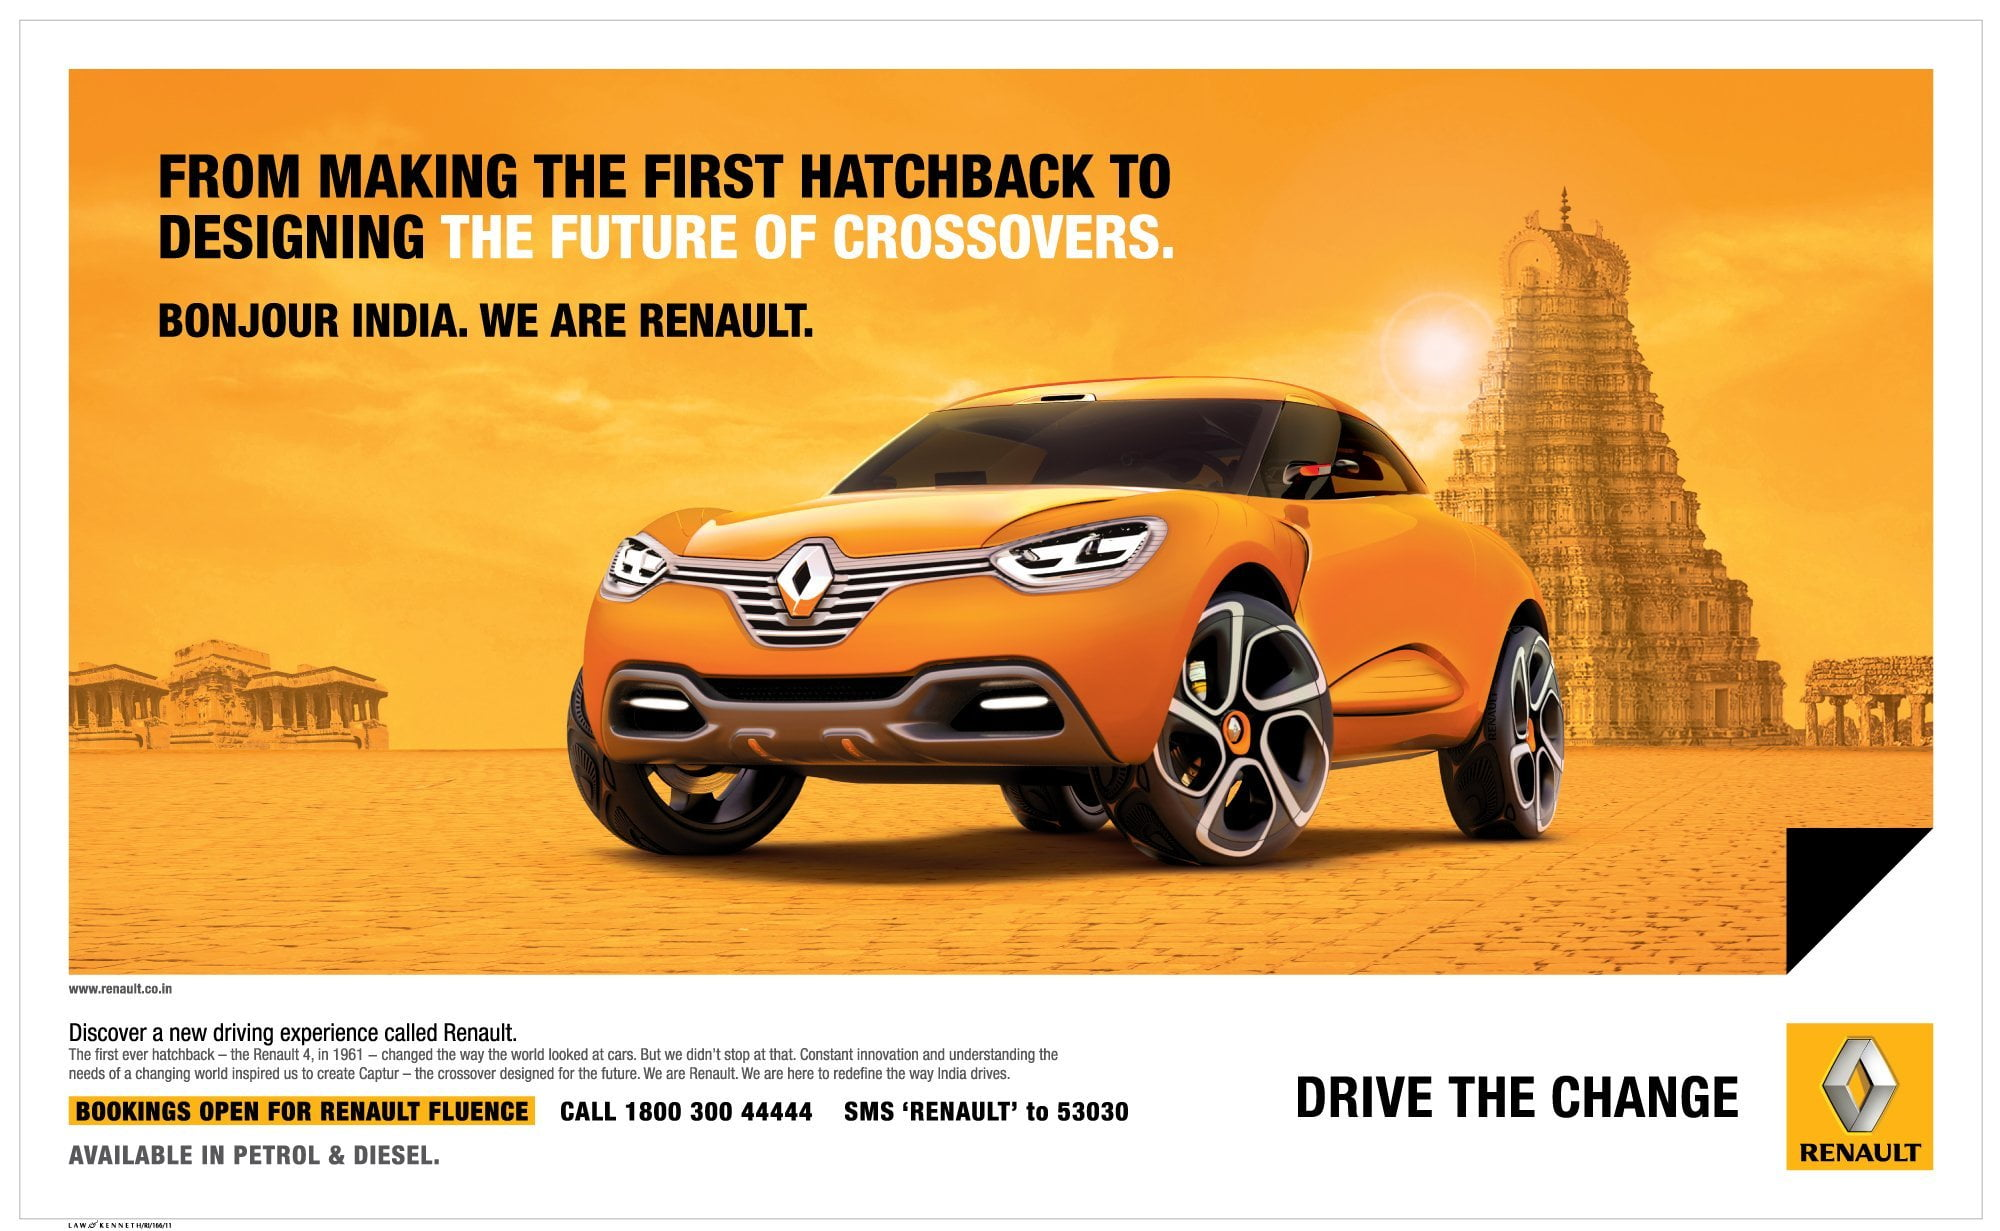 india car market boomed 33 in october renault shines driven by duster focus2move. Black Bedroom Furniture Sets. Home Design Ideas